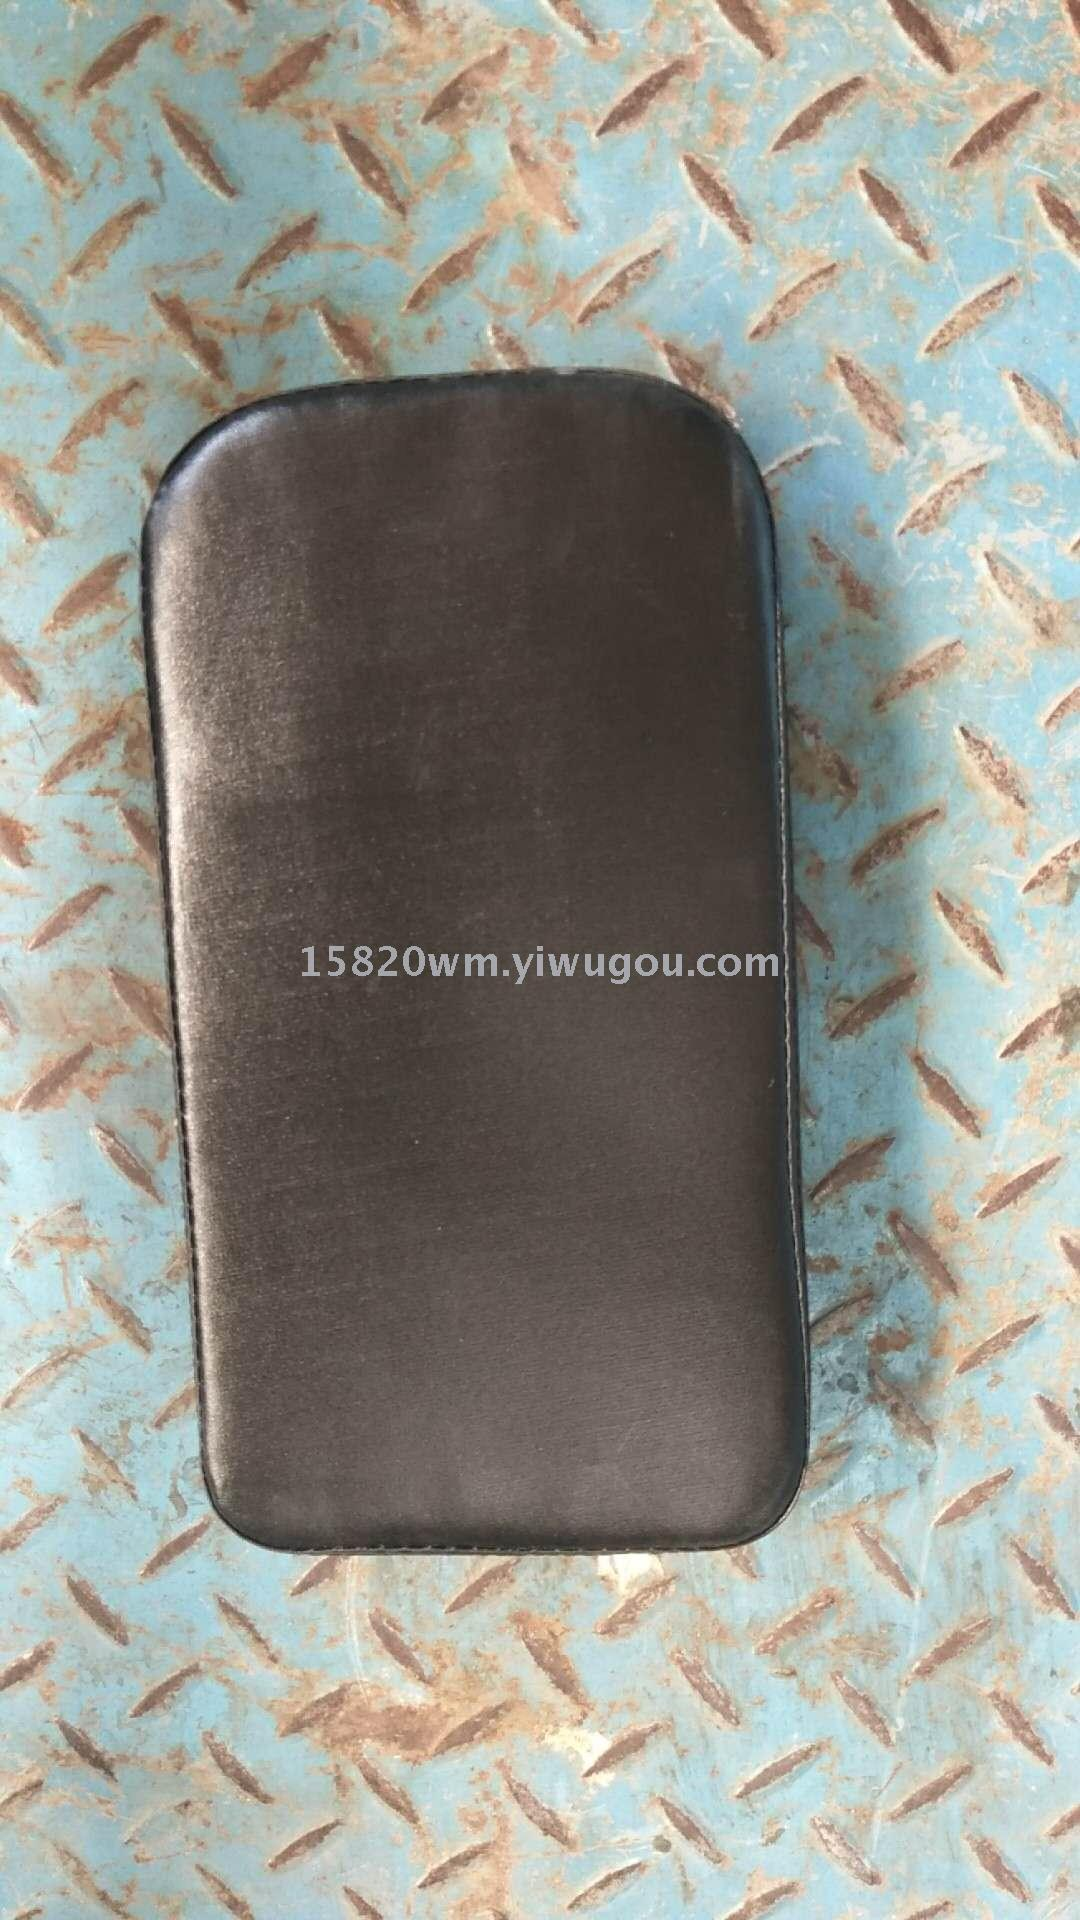 Supply The Rear Seat Cushion Of The Bicycle Seat Is Mounted On The